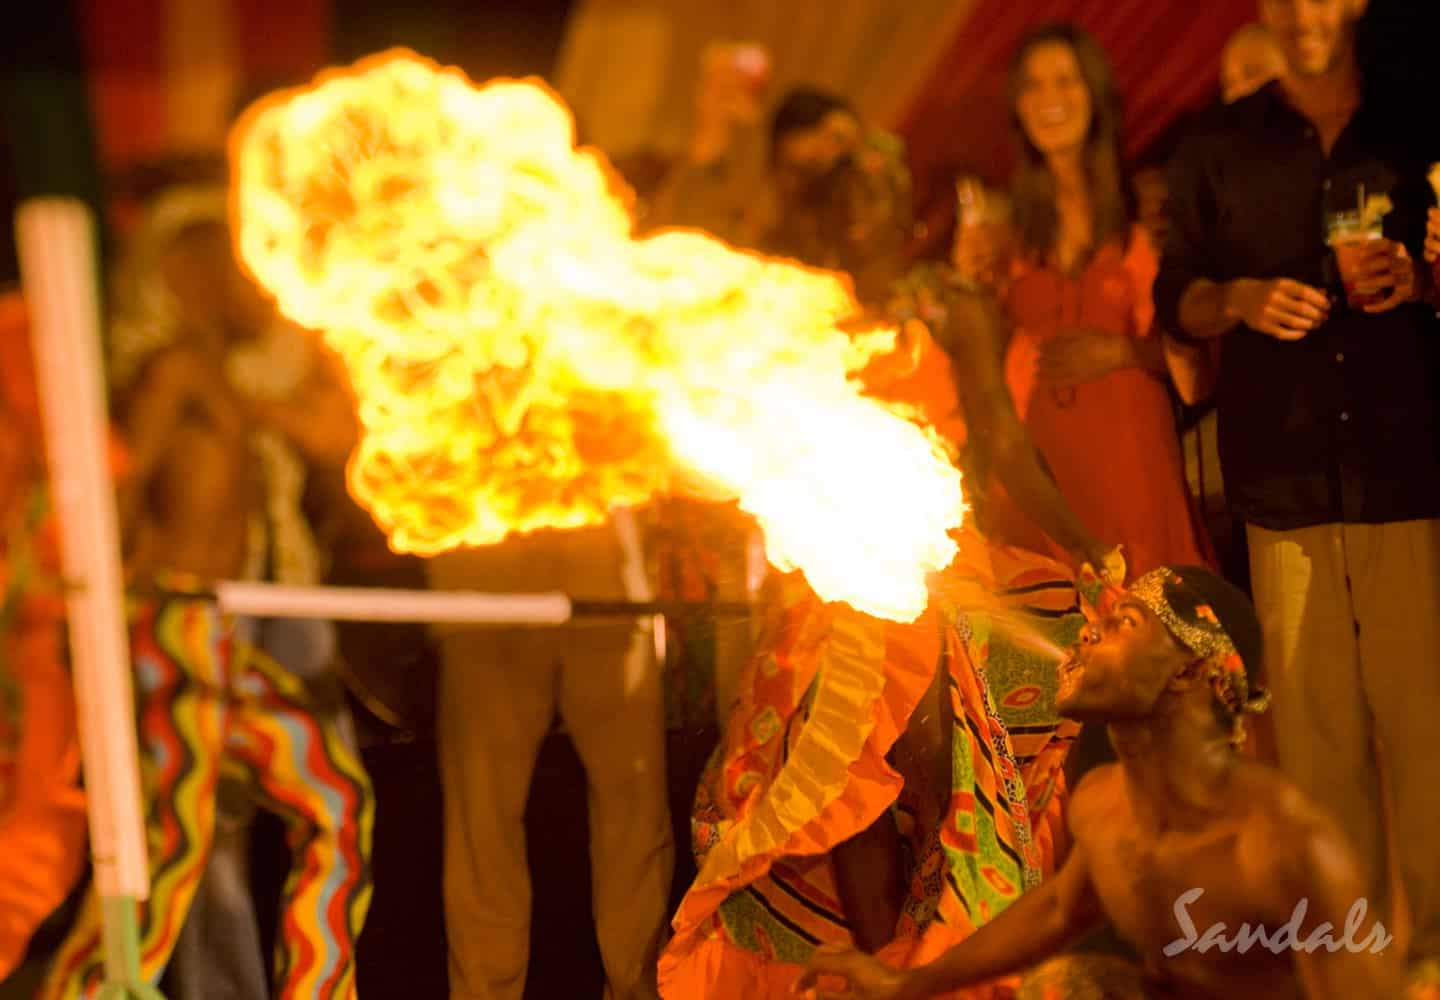 evening entertainment at the Sandals Montego Bay resort in Jamaica, All Inclusive Adults Only Vacation Packages